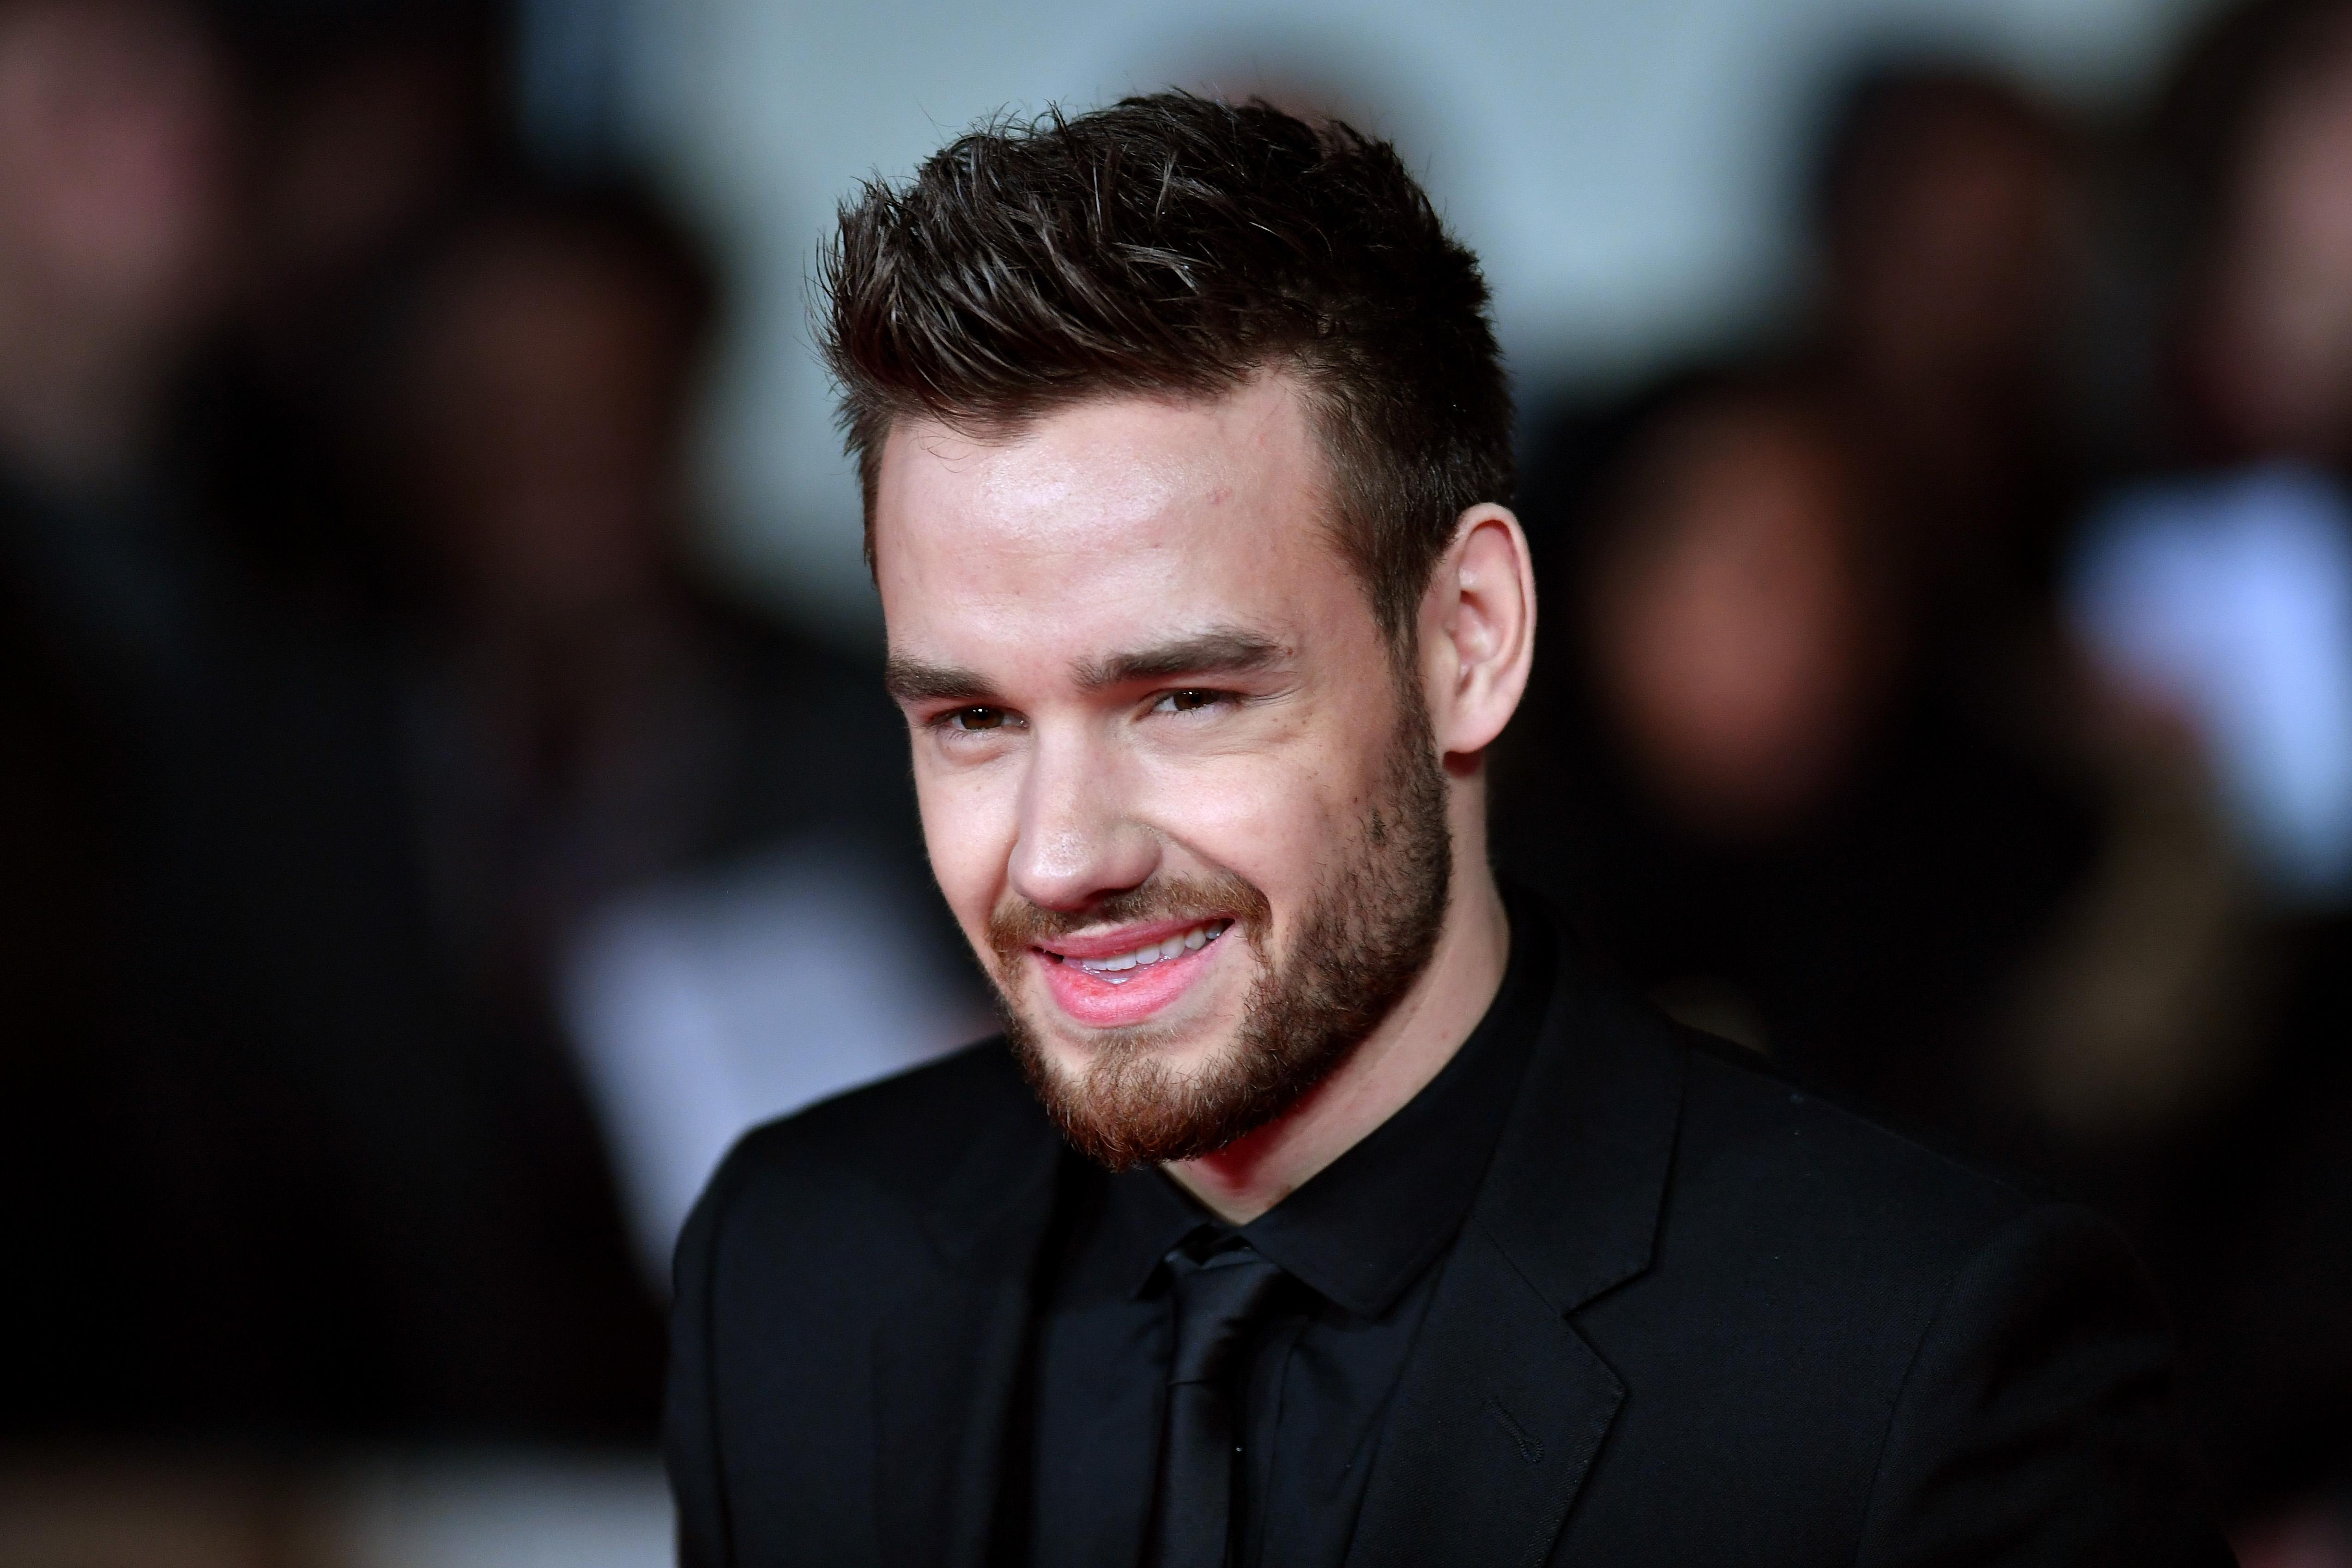 Liam Payne refuses to comment on Naomi Cambell romance rumours